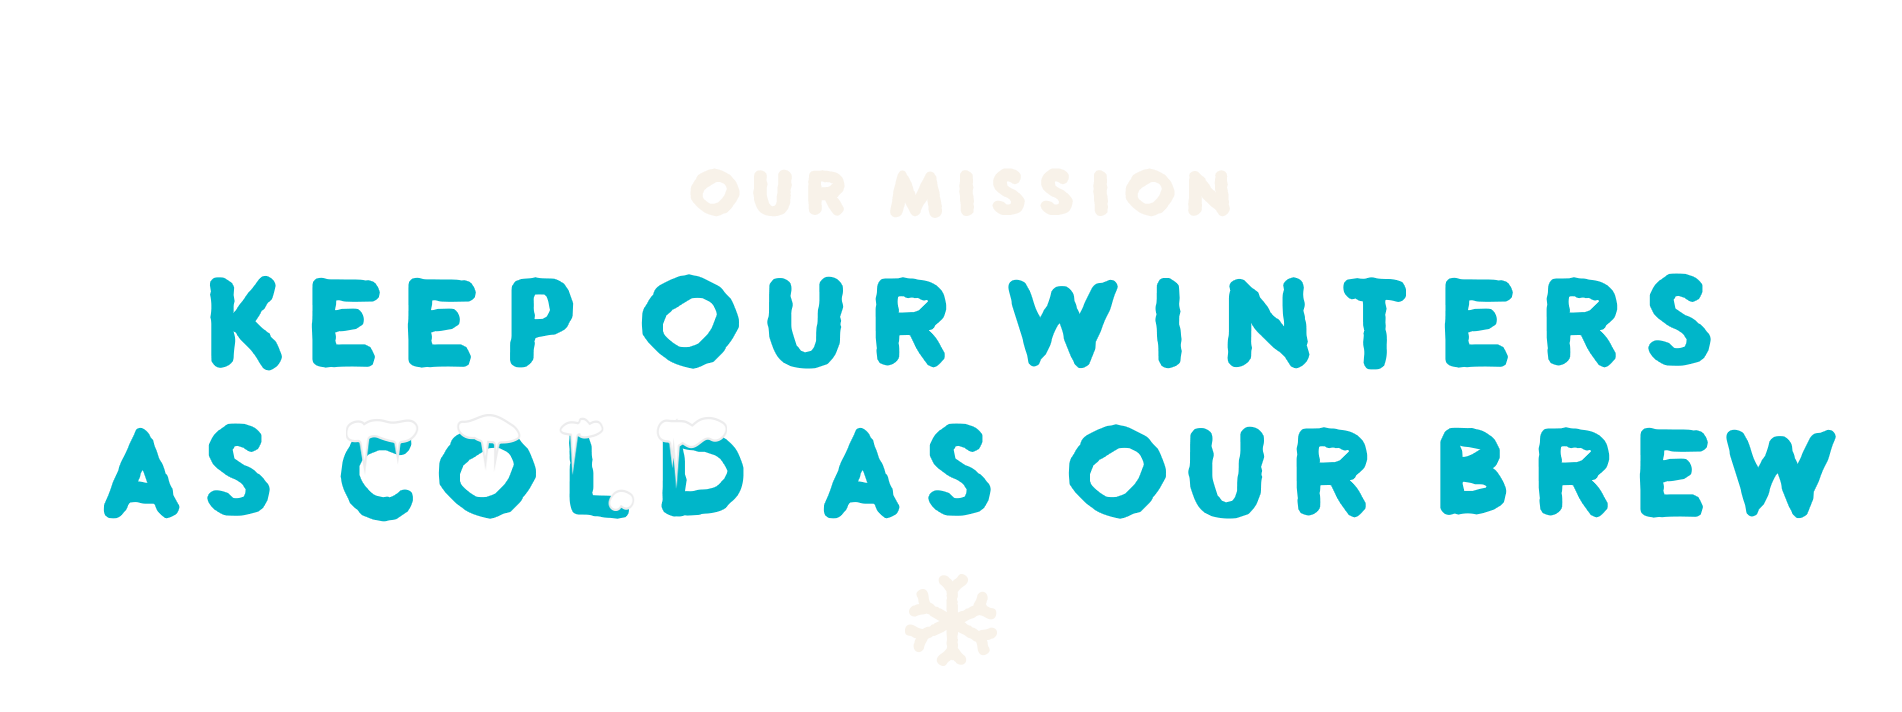 our mission_new.png